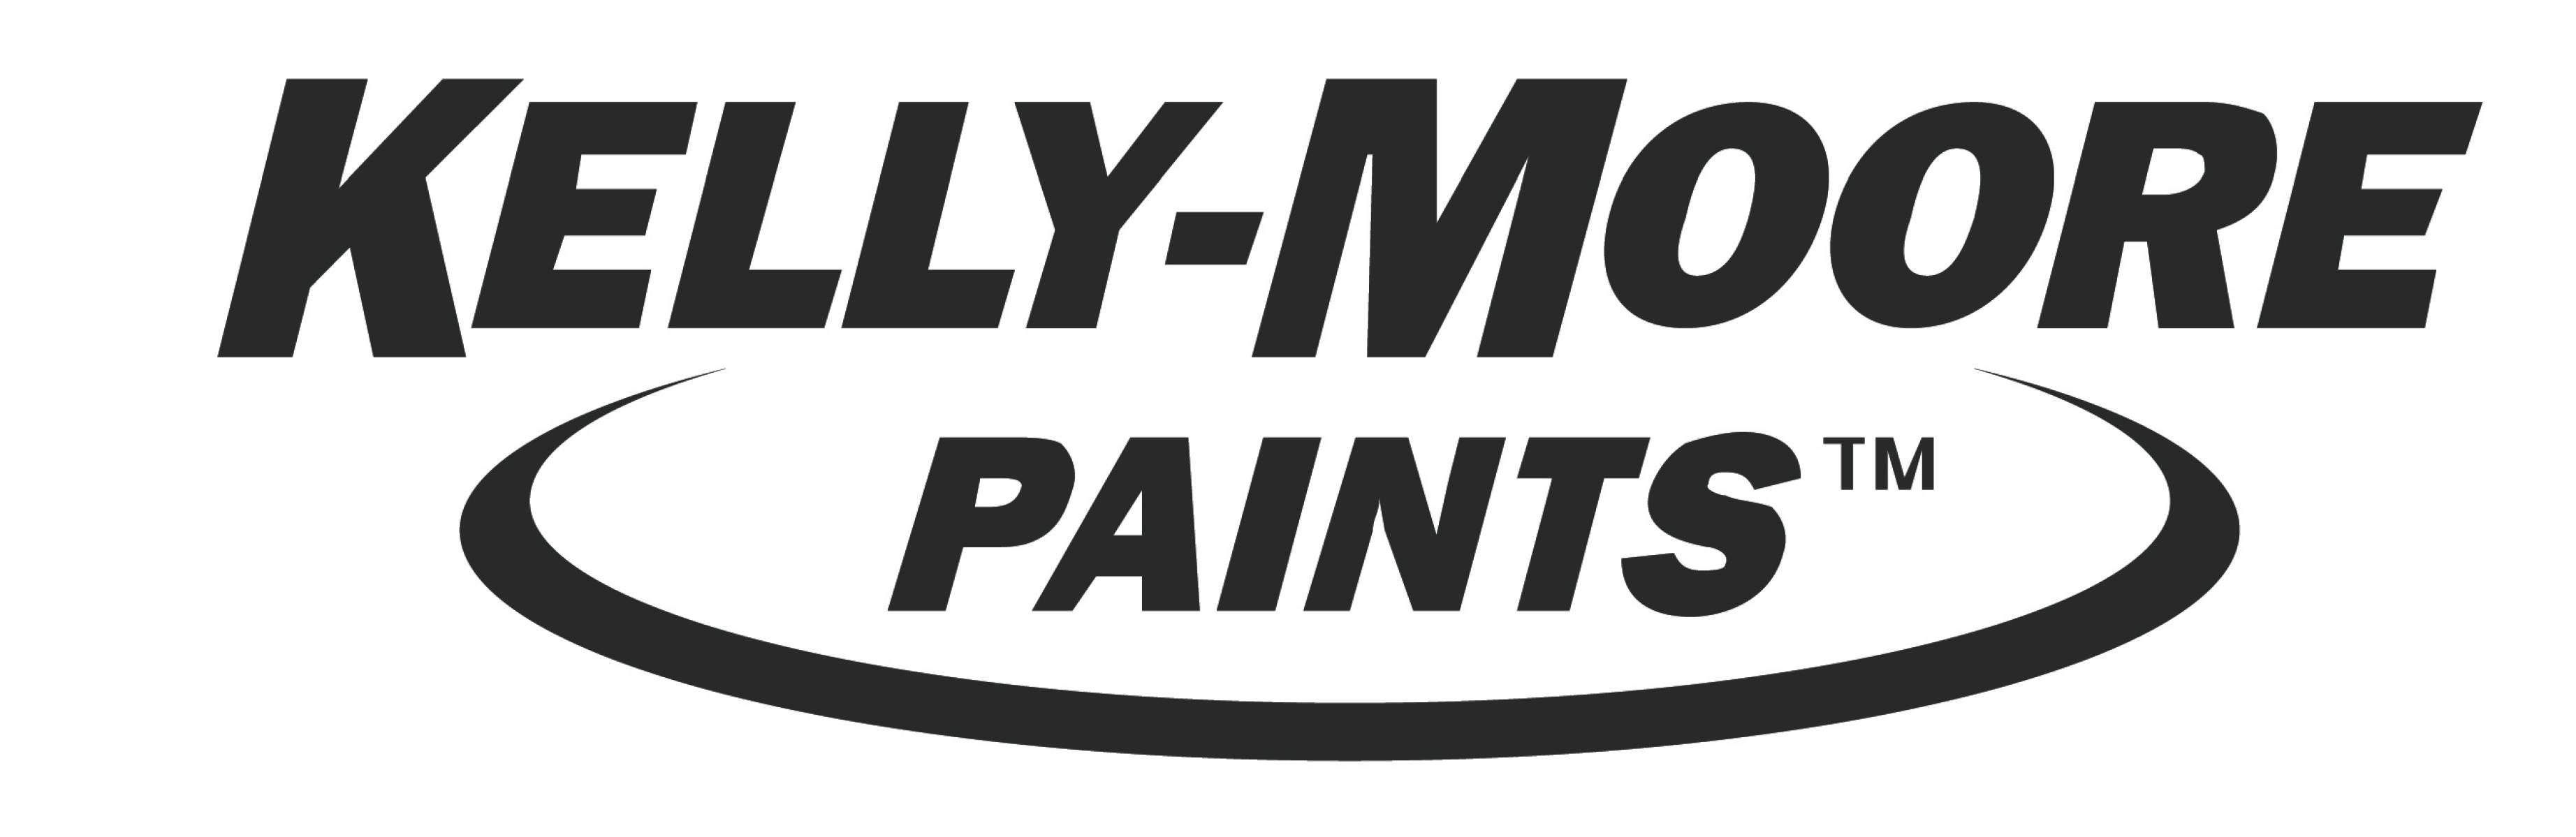 Kelly Moore Paints Logo [PDF] png